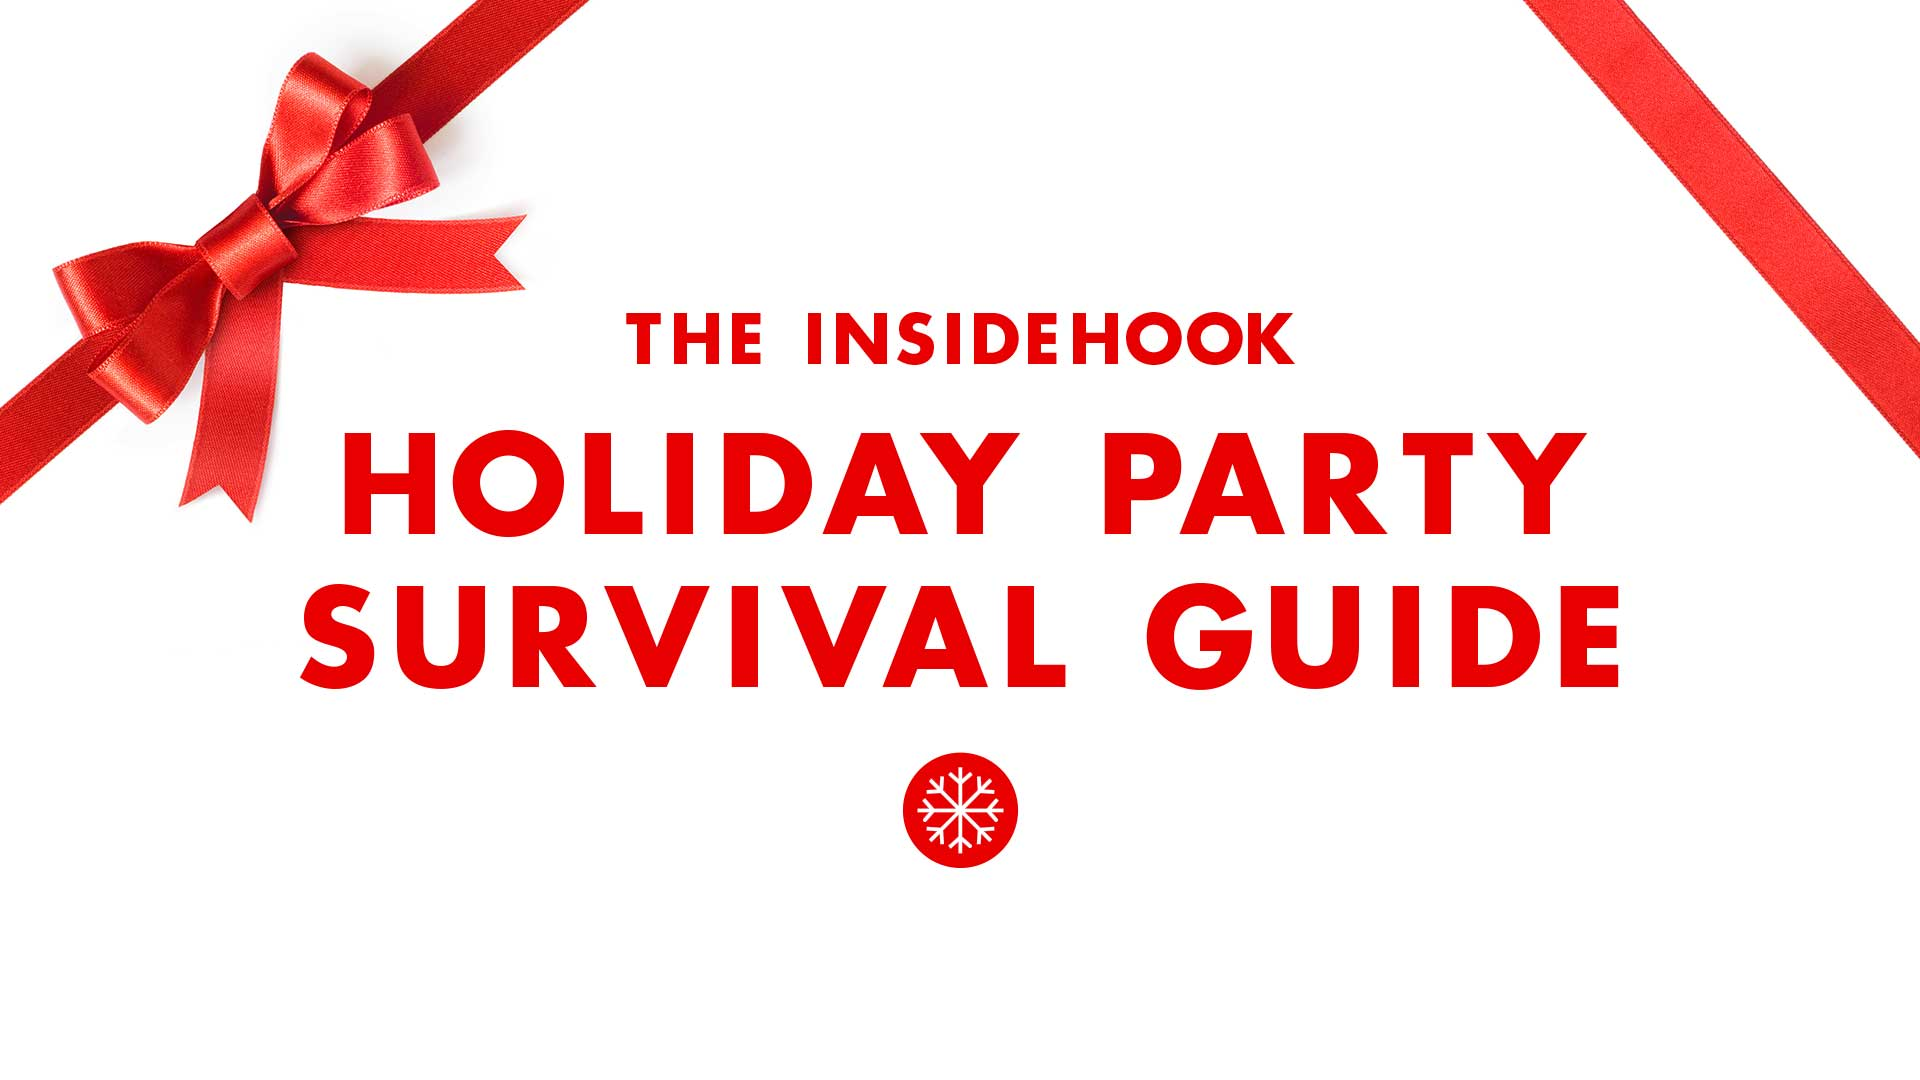 holiday party survival guide insidehook holiday party survival guide